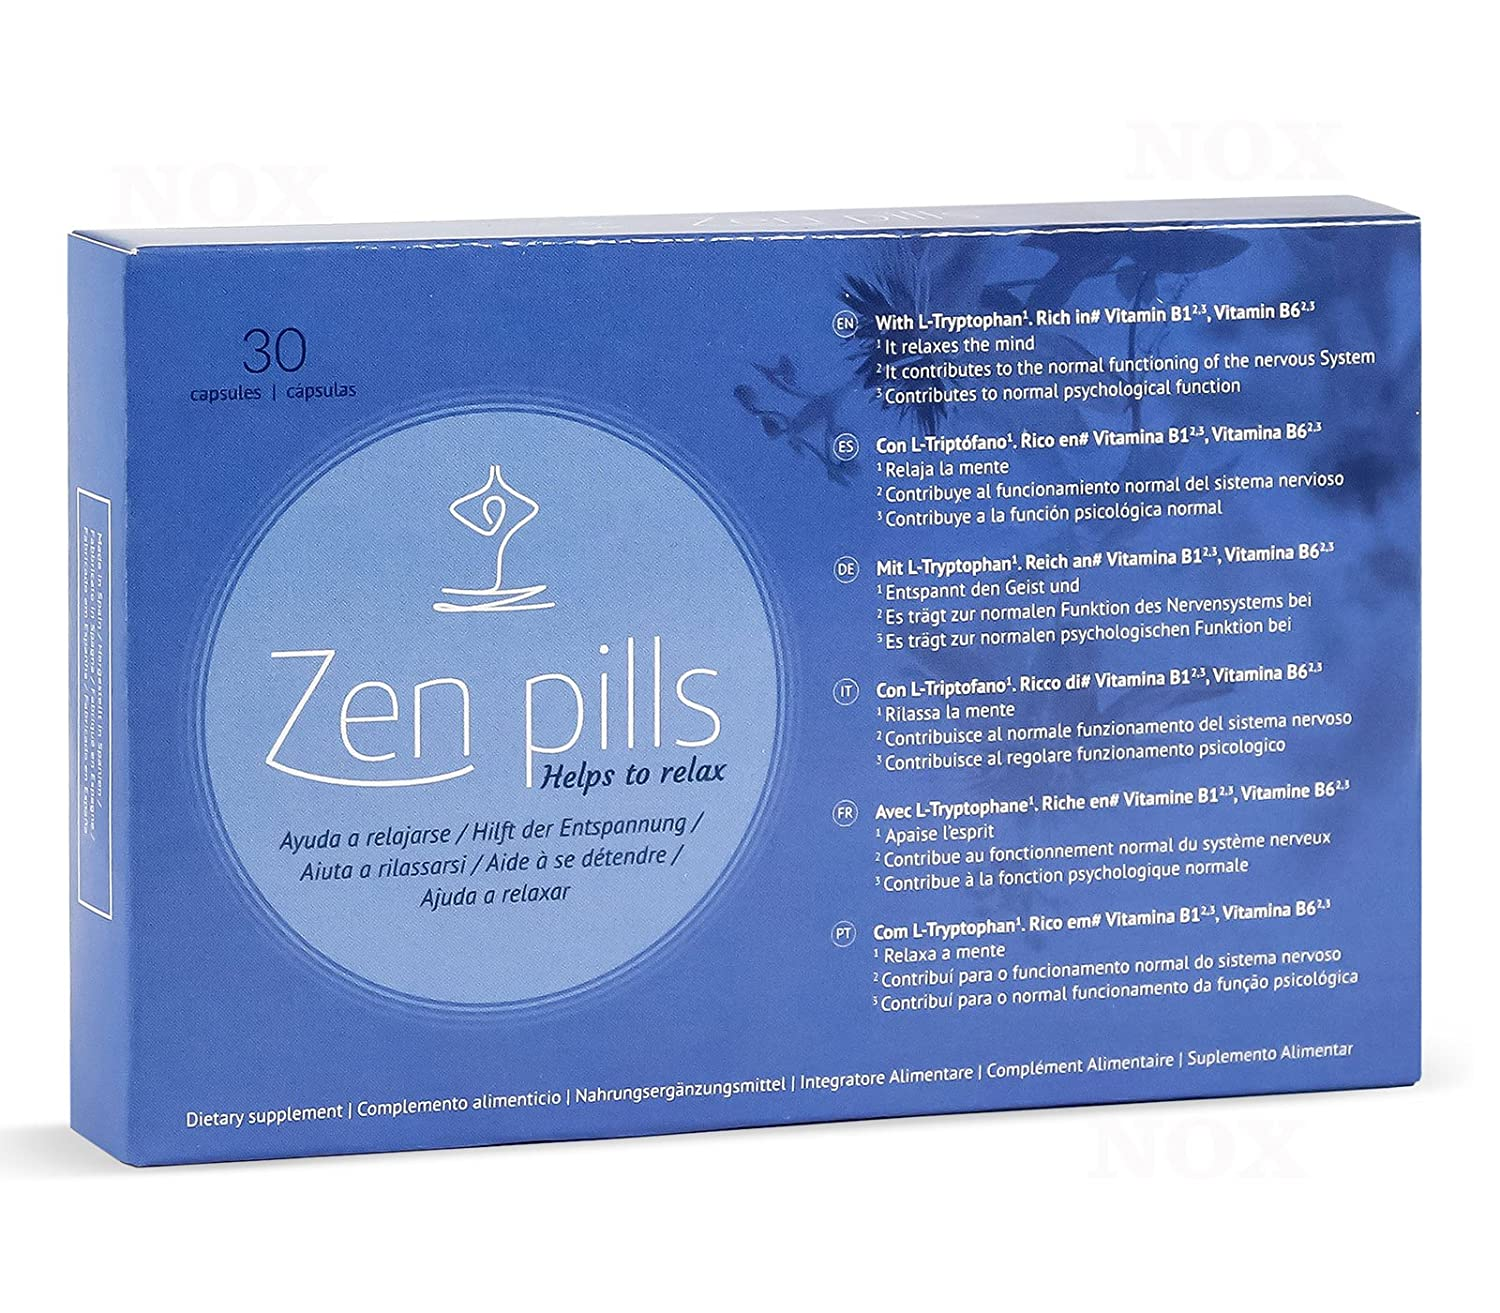 Amazon.com: Zen Pills: Relax capsules to control anxiety by ...